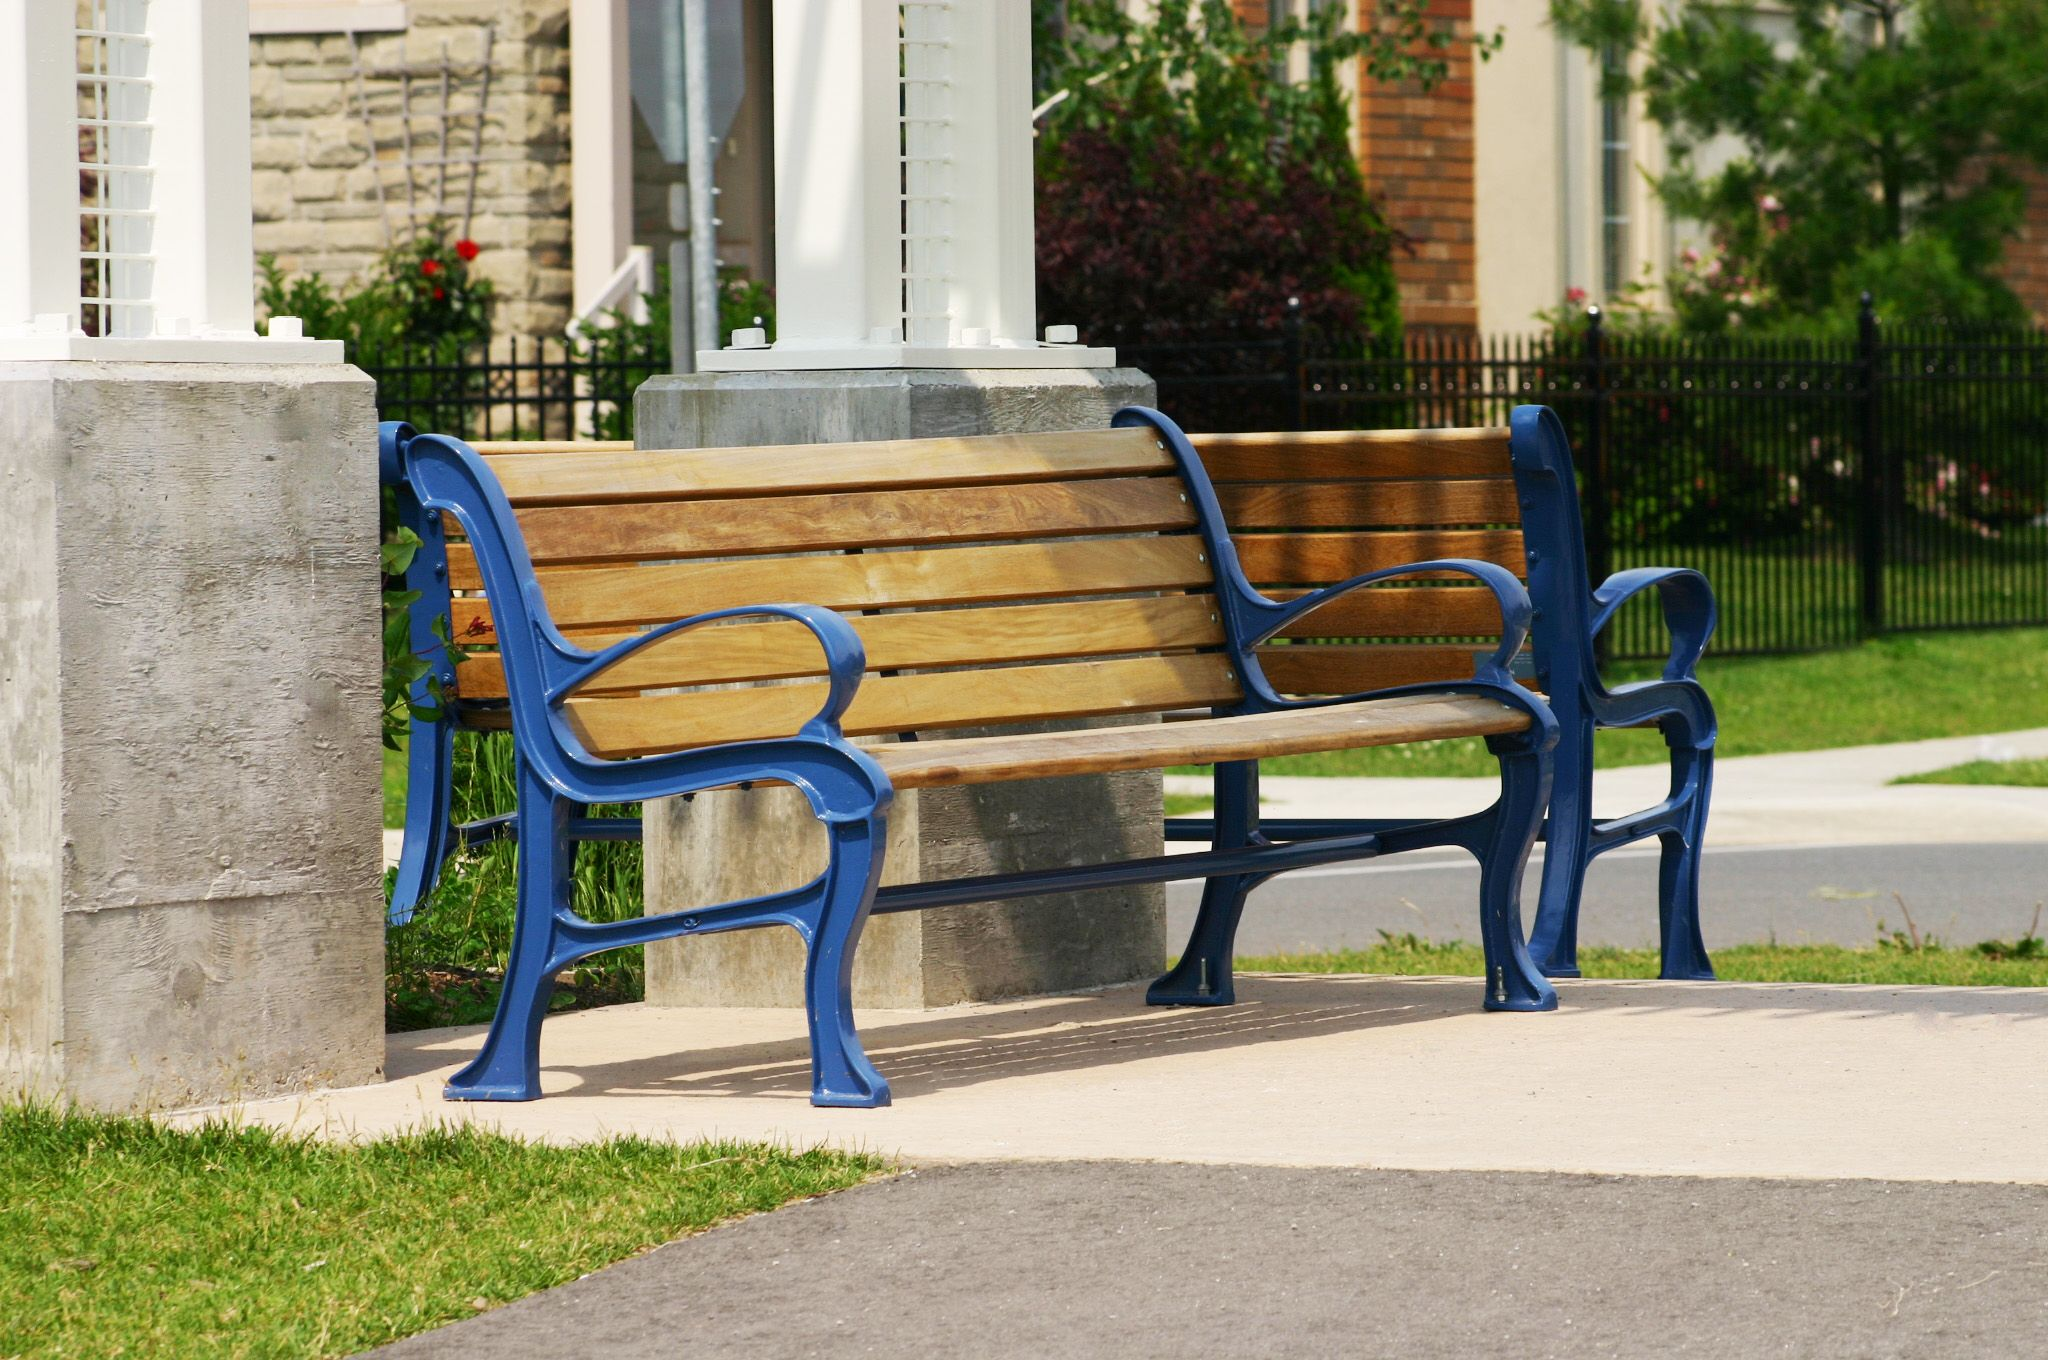 Maglins mlb300w benches found in a guelph ontario neighborhood maglin maglinsitefurniture